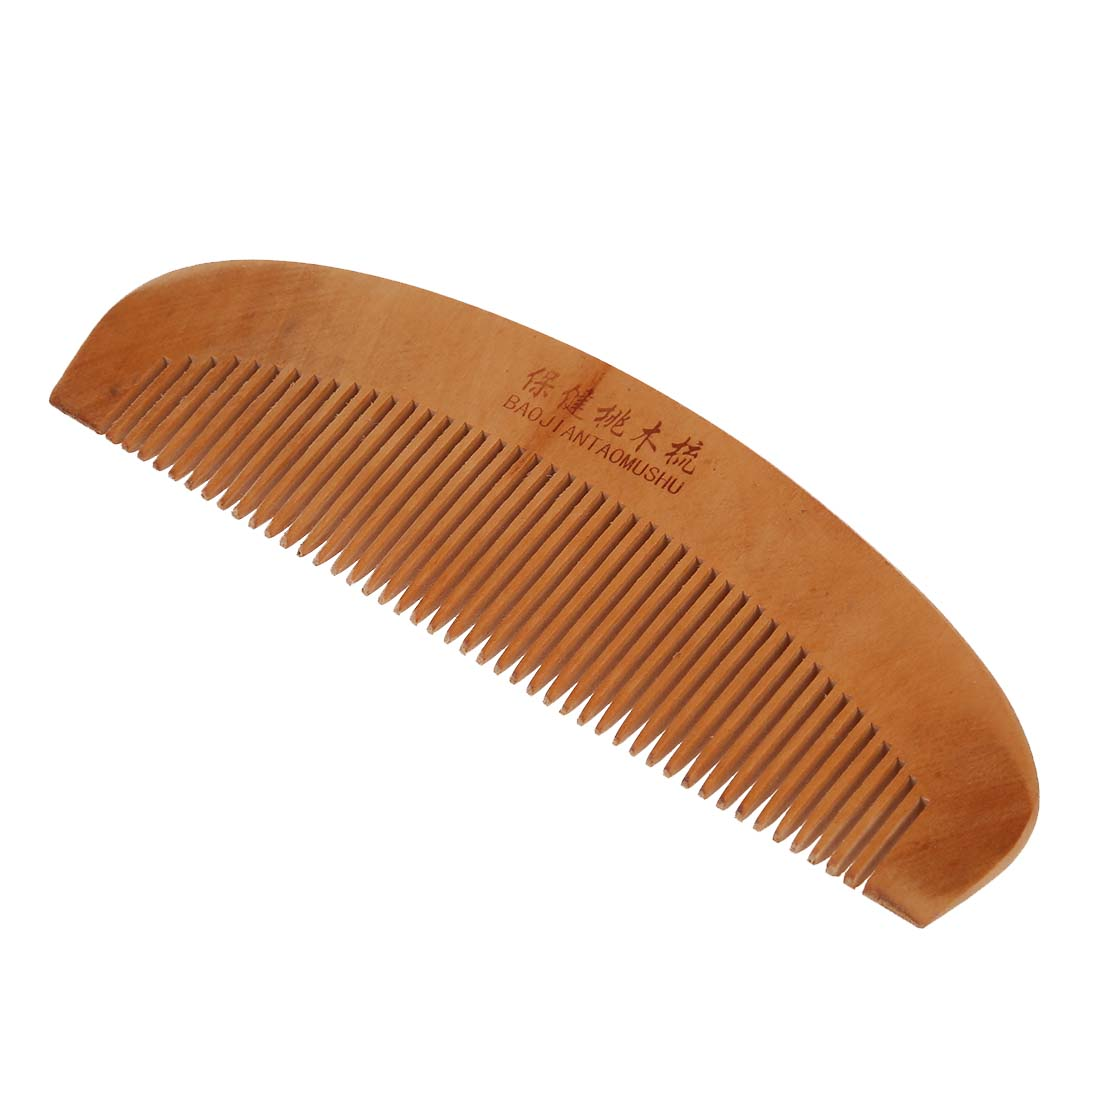 6.5 Length Dual Head Wooden Toothed Anti-static Hair Comb For Women